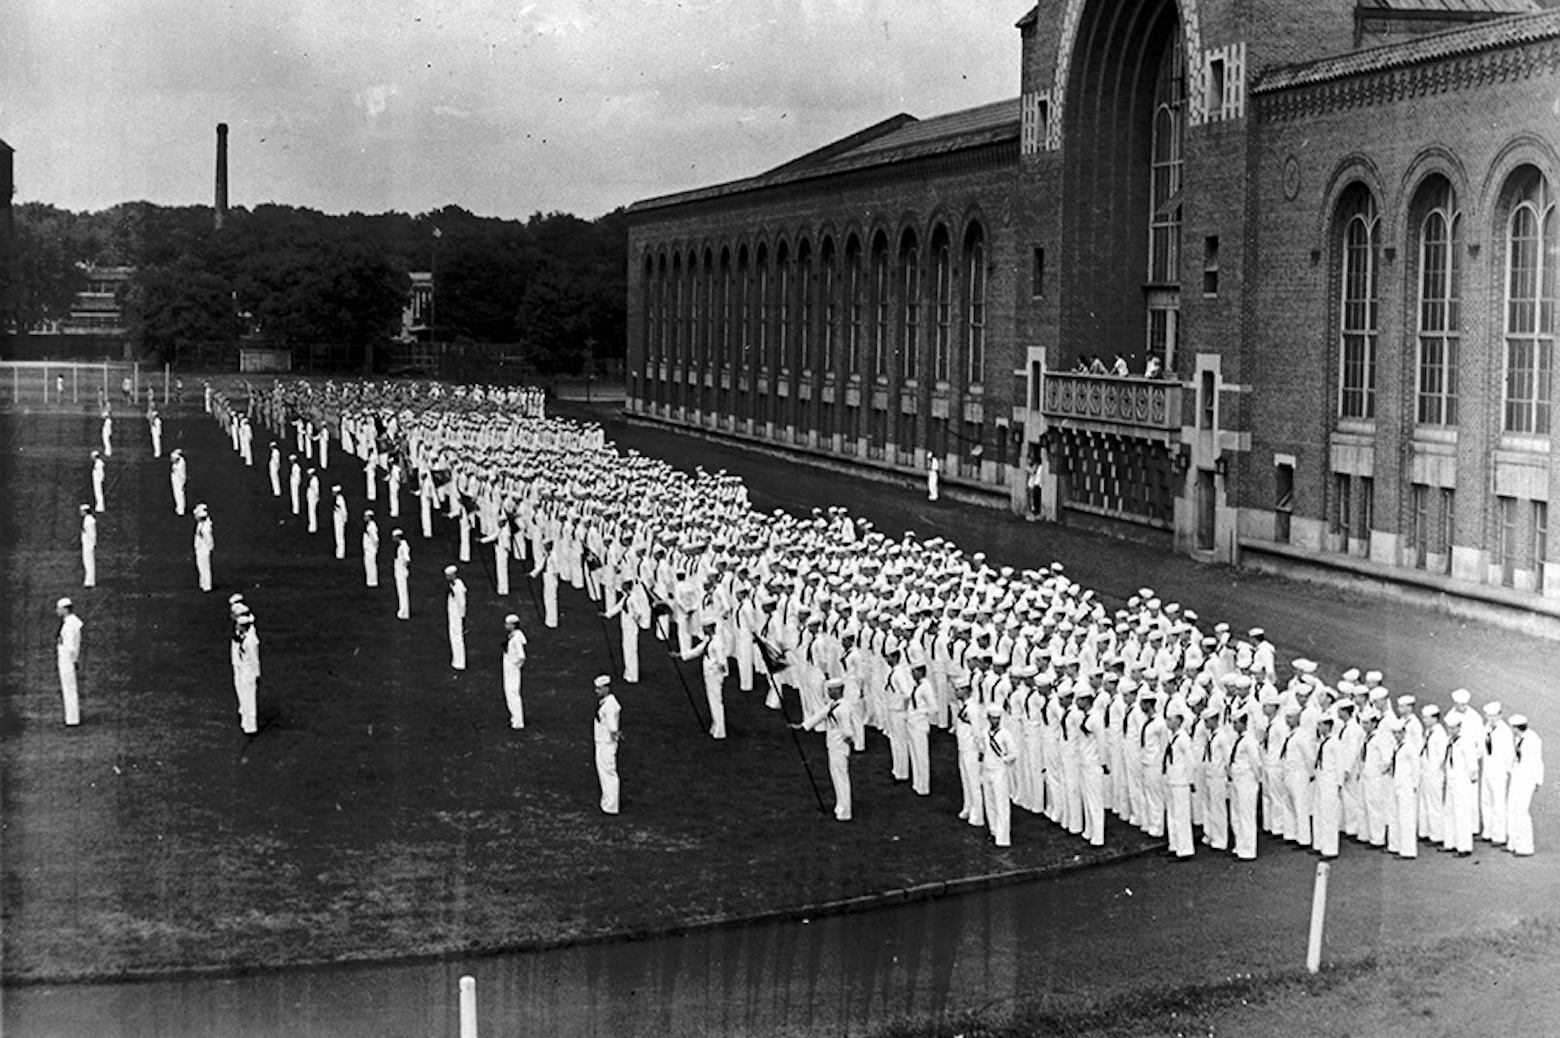 Naval Units lined up in a field